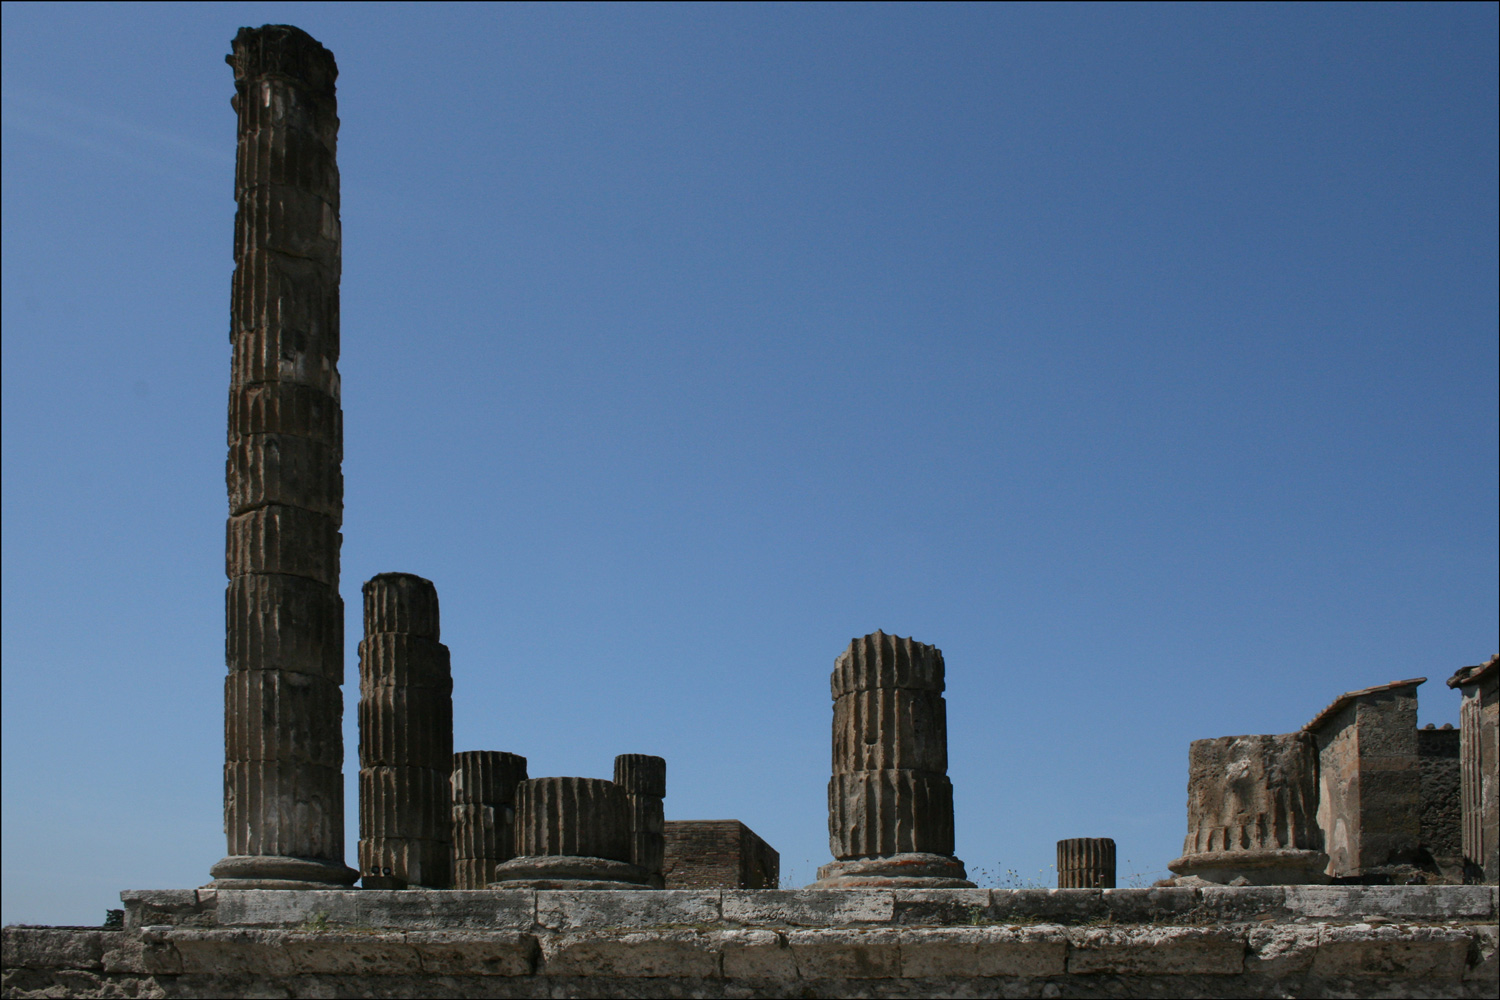 Temple of Jupiter from the East